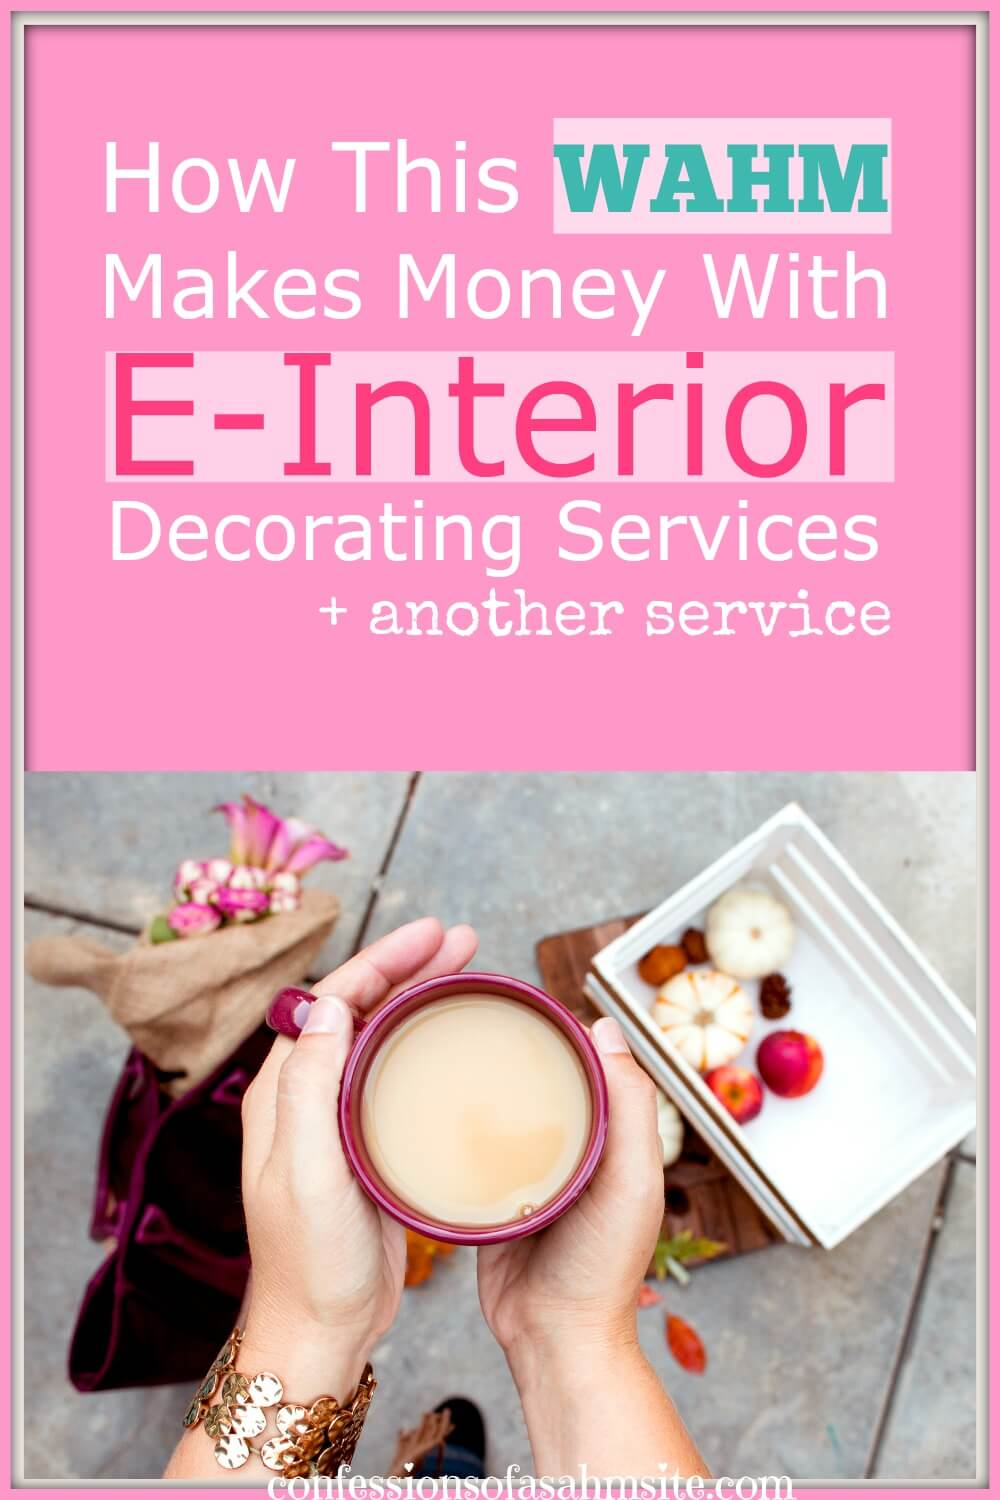 Feature Friday: How this WAHM makes money with E-Interior decorating services plus another service. Ever thought of making money by providing interior decorating services but reach thousands of people far from your home area? Read this WAHM's story to learn how she did it.